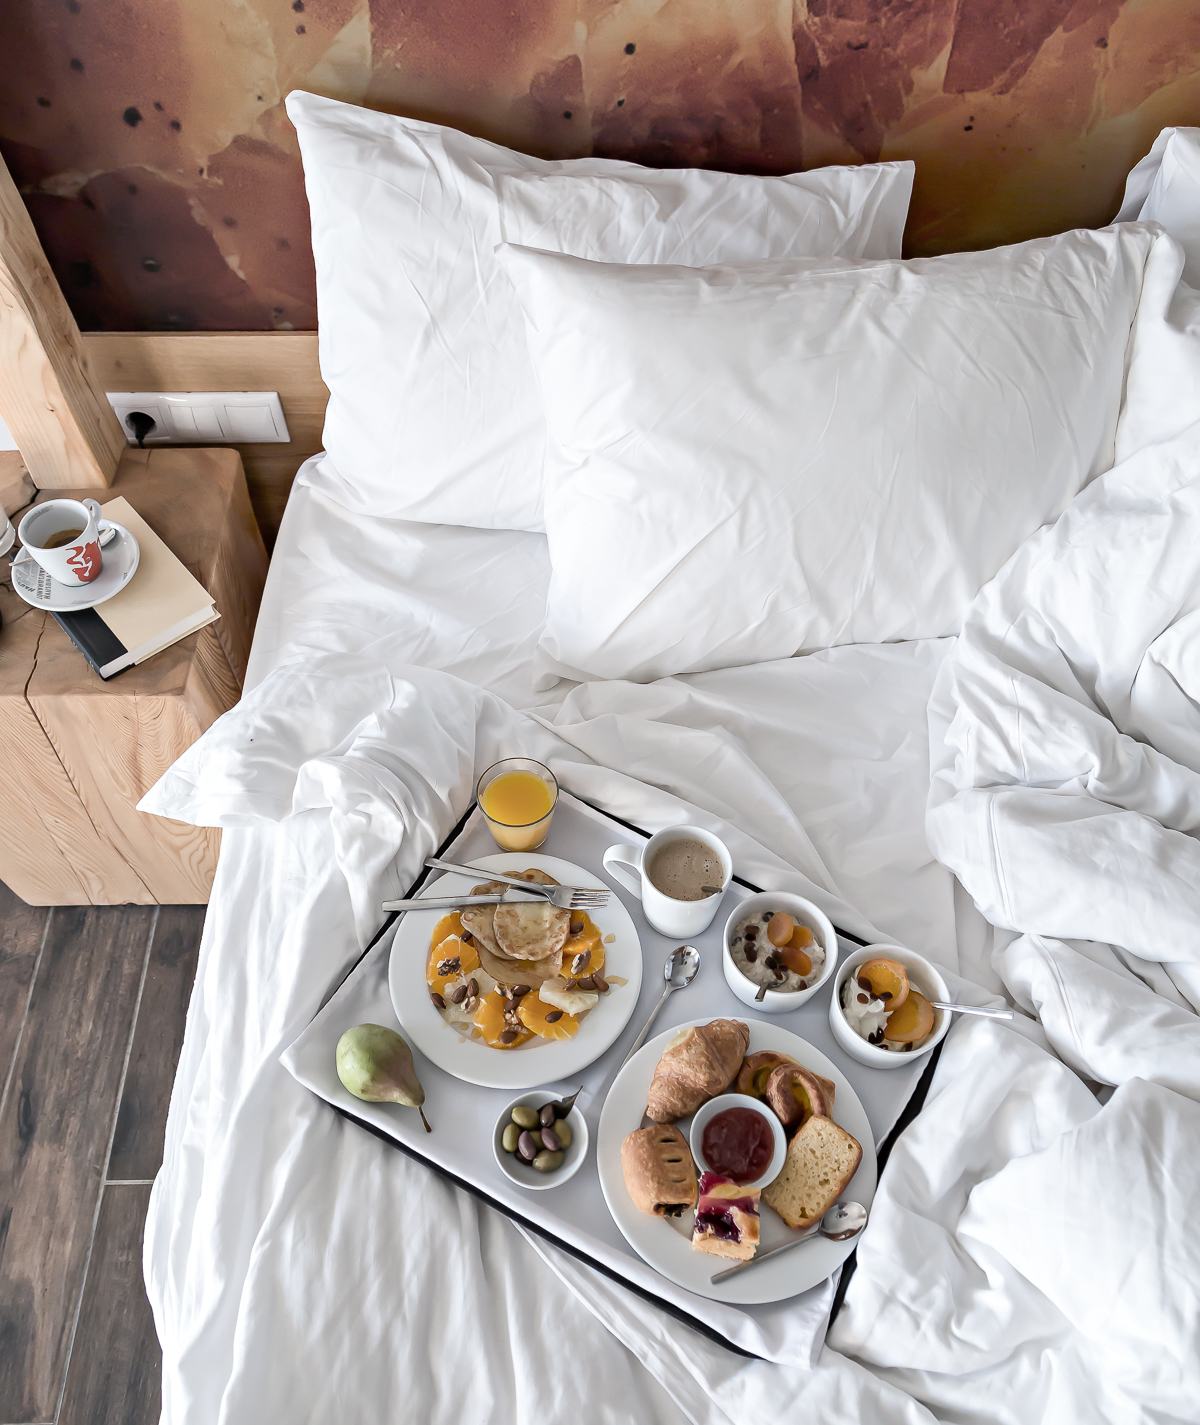 Midweek breakfast in bed